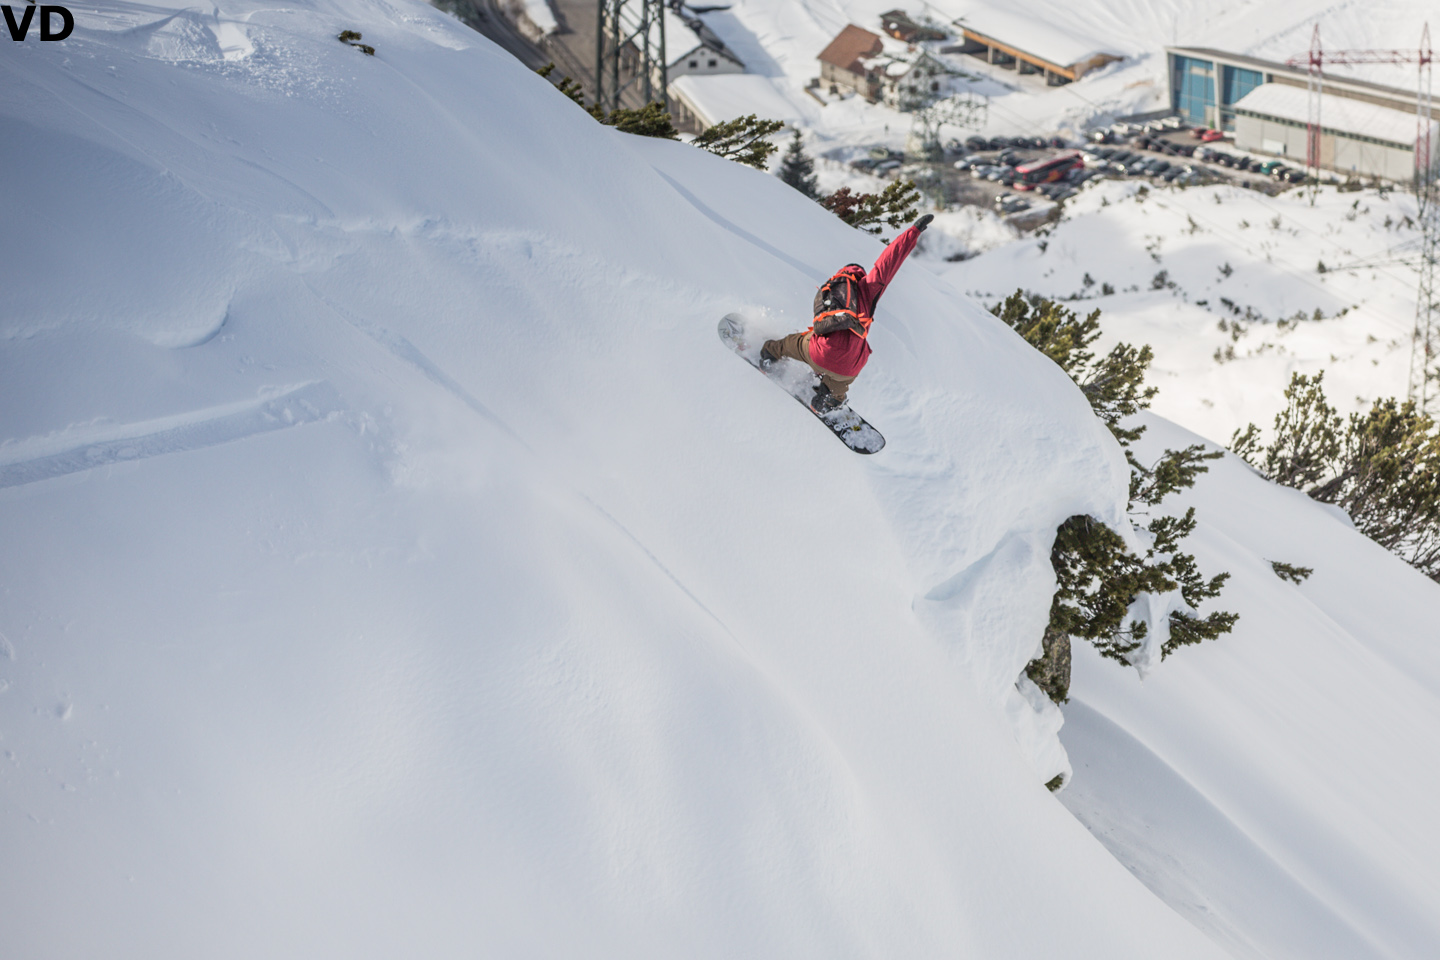 Torgeir Bergrem shows the young gun how it's done. Photo: Vernon Deck